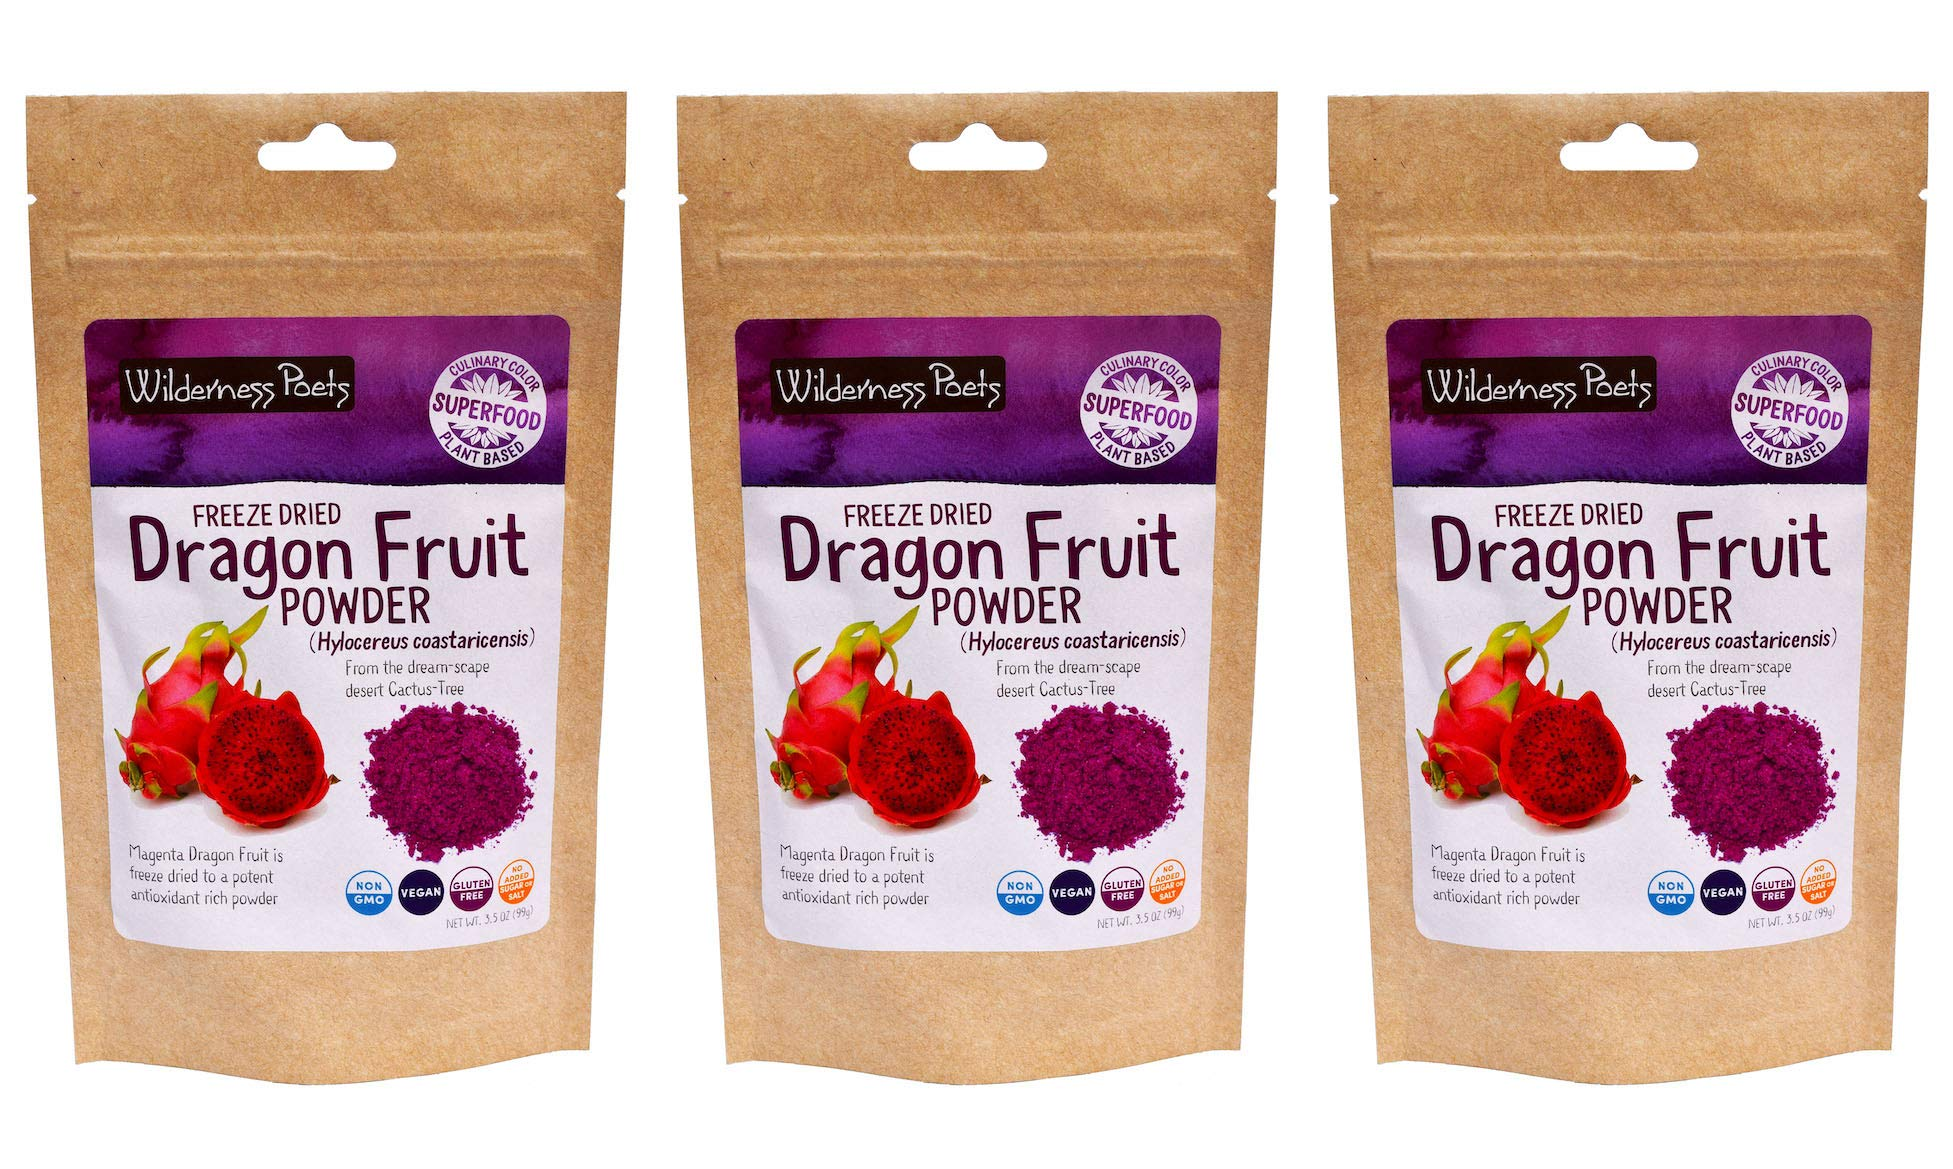 Wilderness Poets Freeze Dried Dragon Fruit Powder - Pitahaya Powder, 3.5 Ounce (Pack of 3)